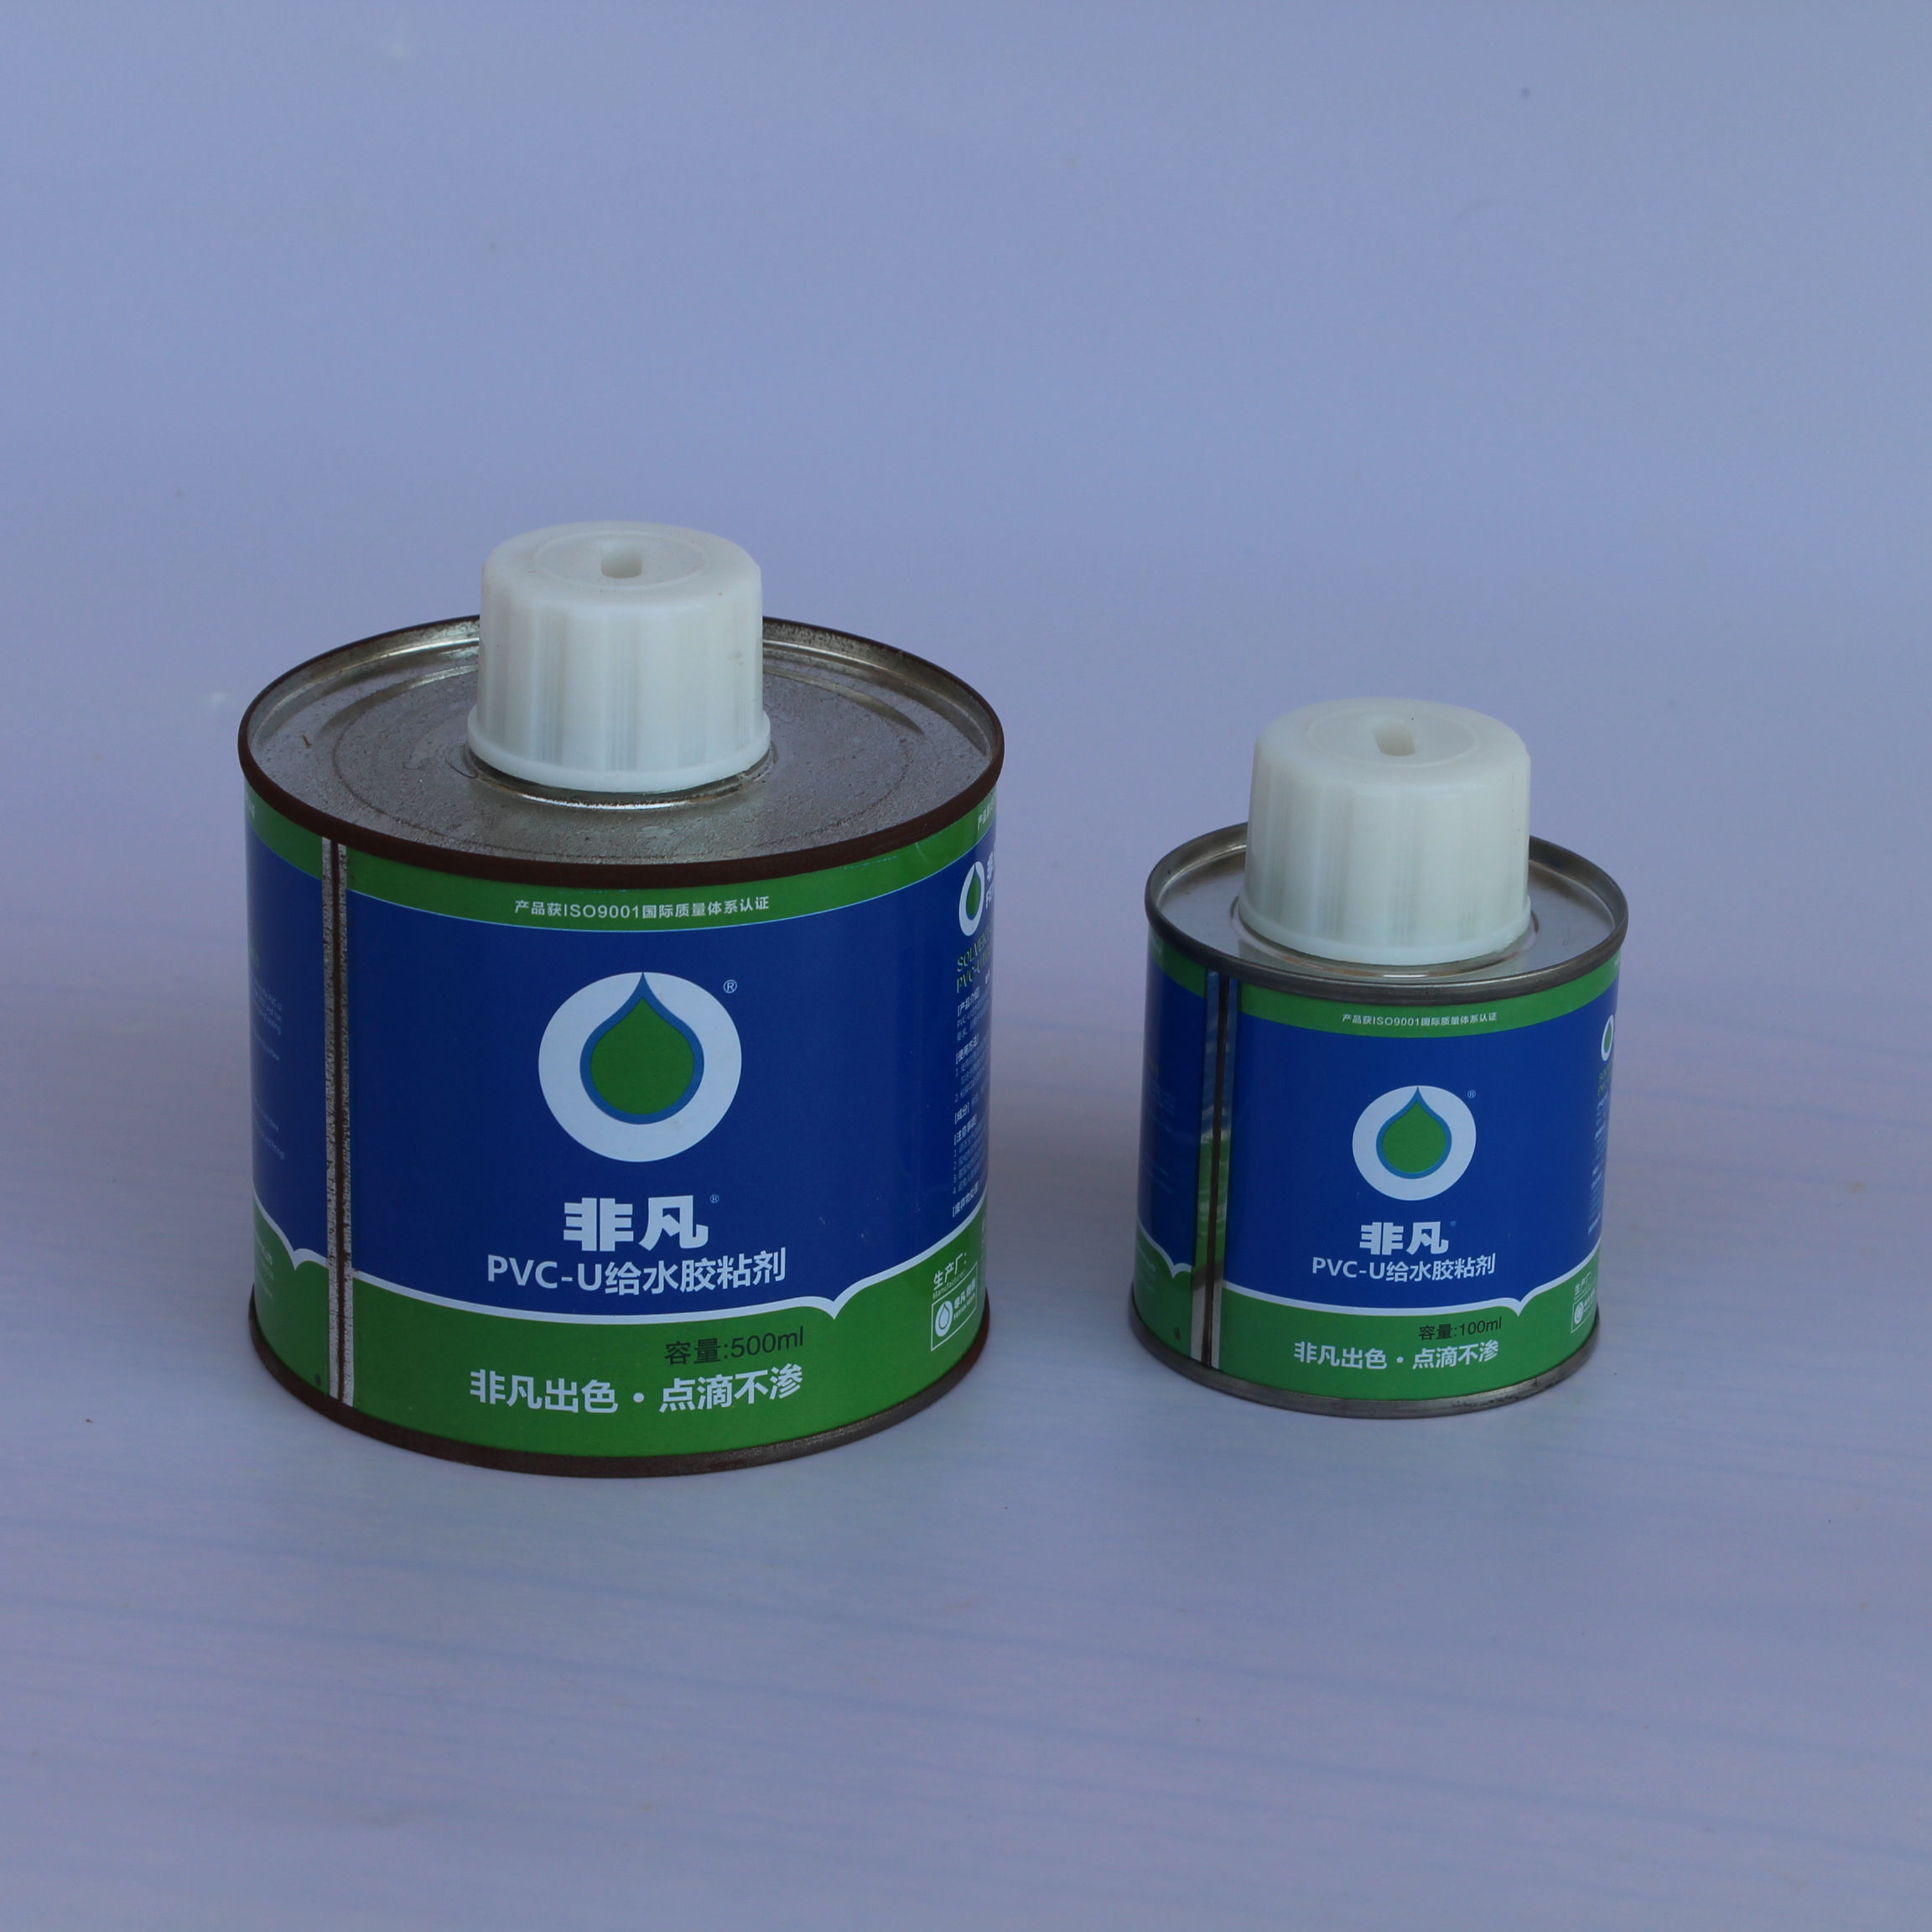 Solvent cement for PVC-U WATER PIPE & FITTINGS pipe adhesive glue